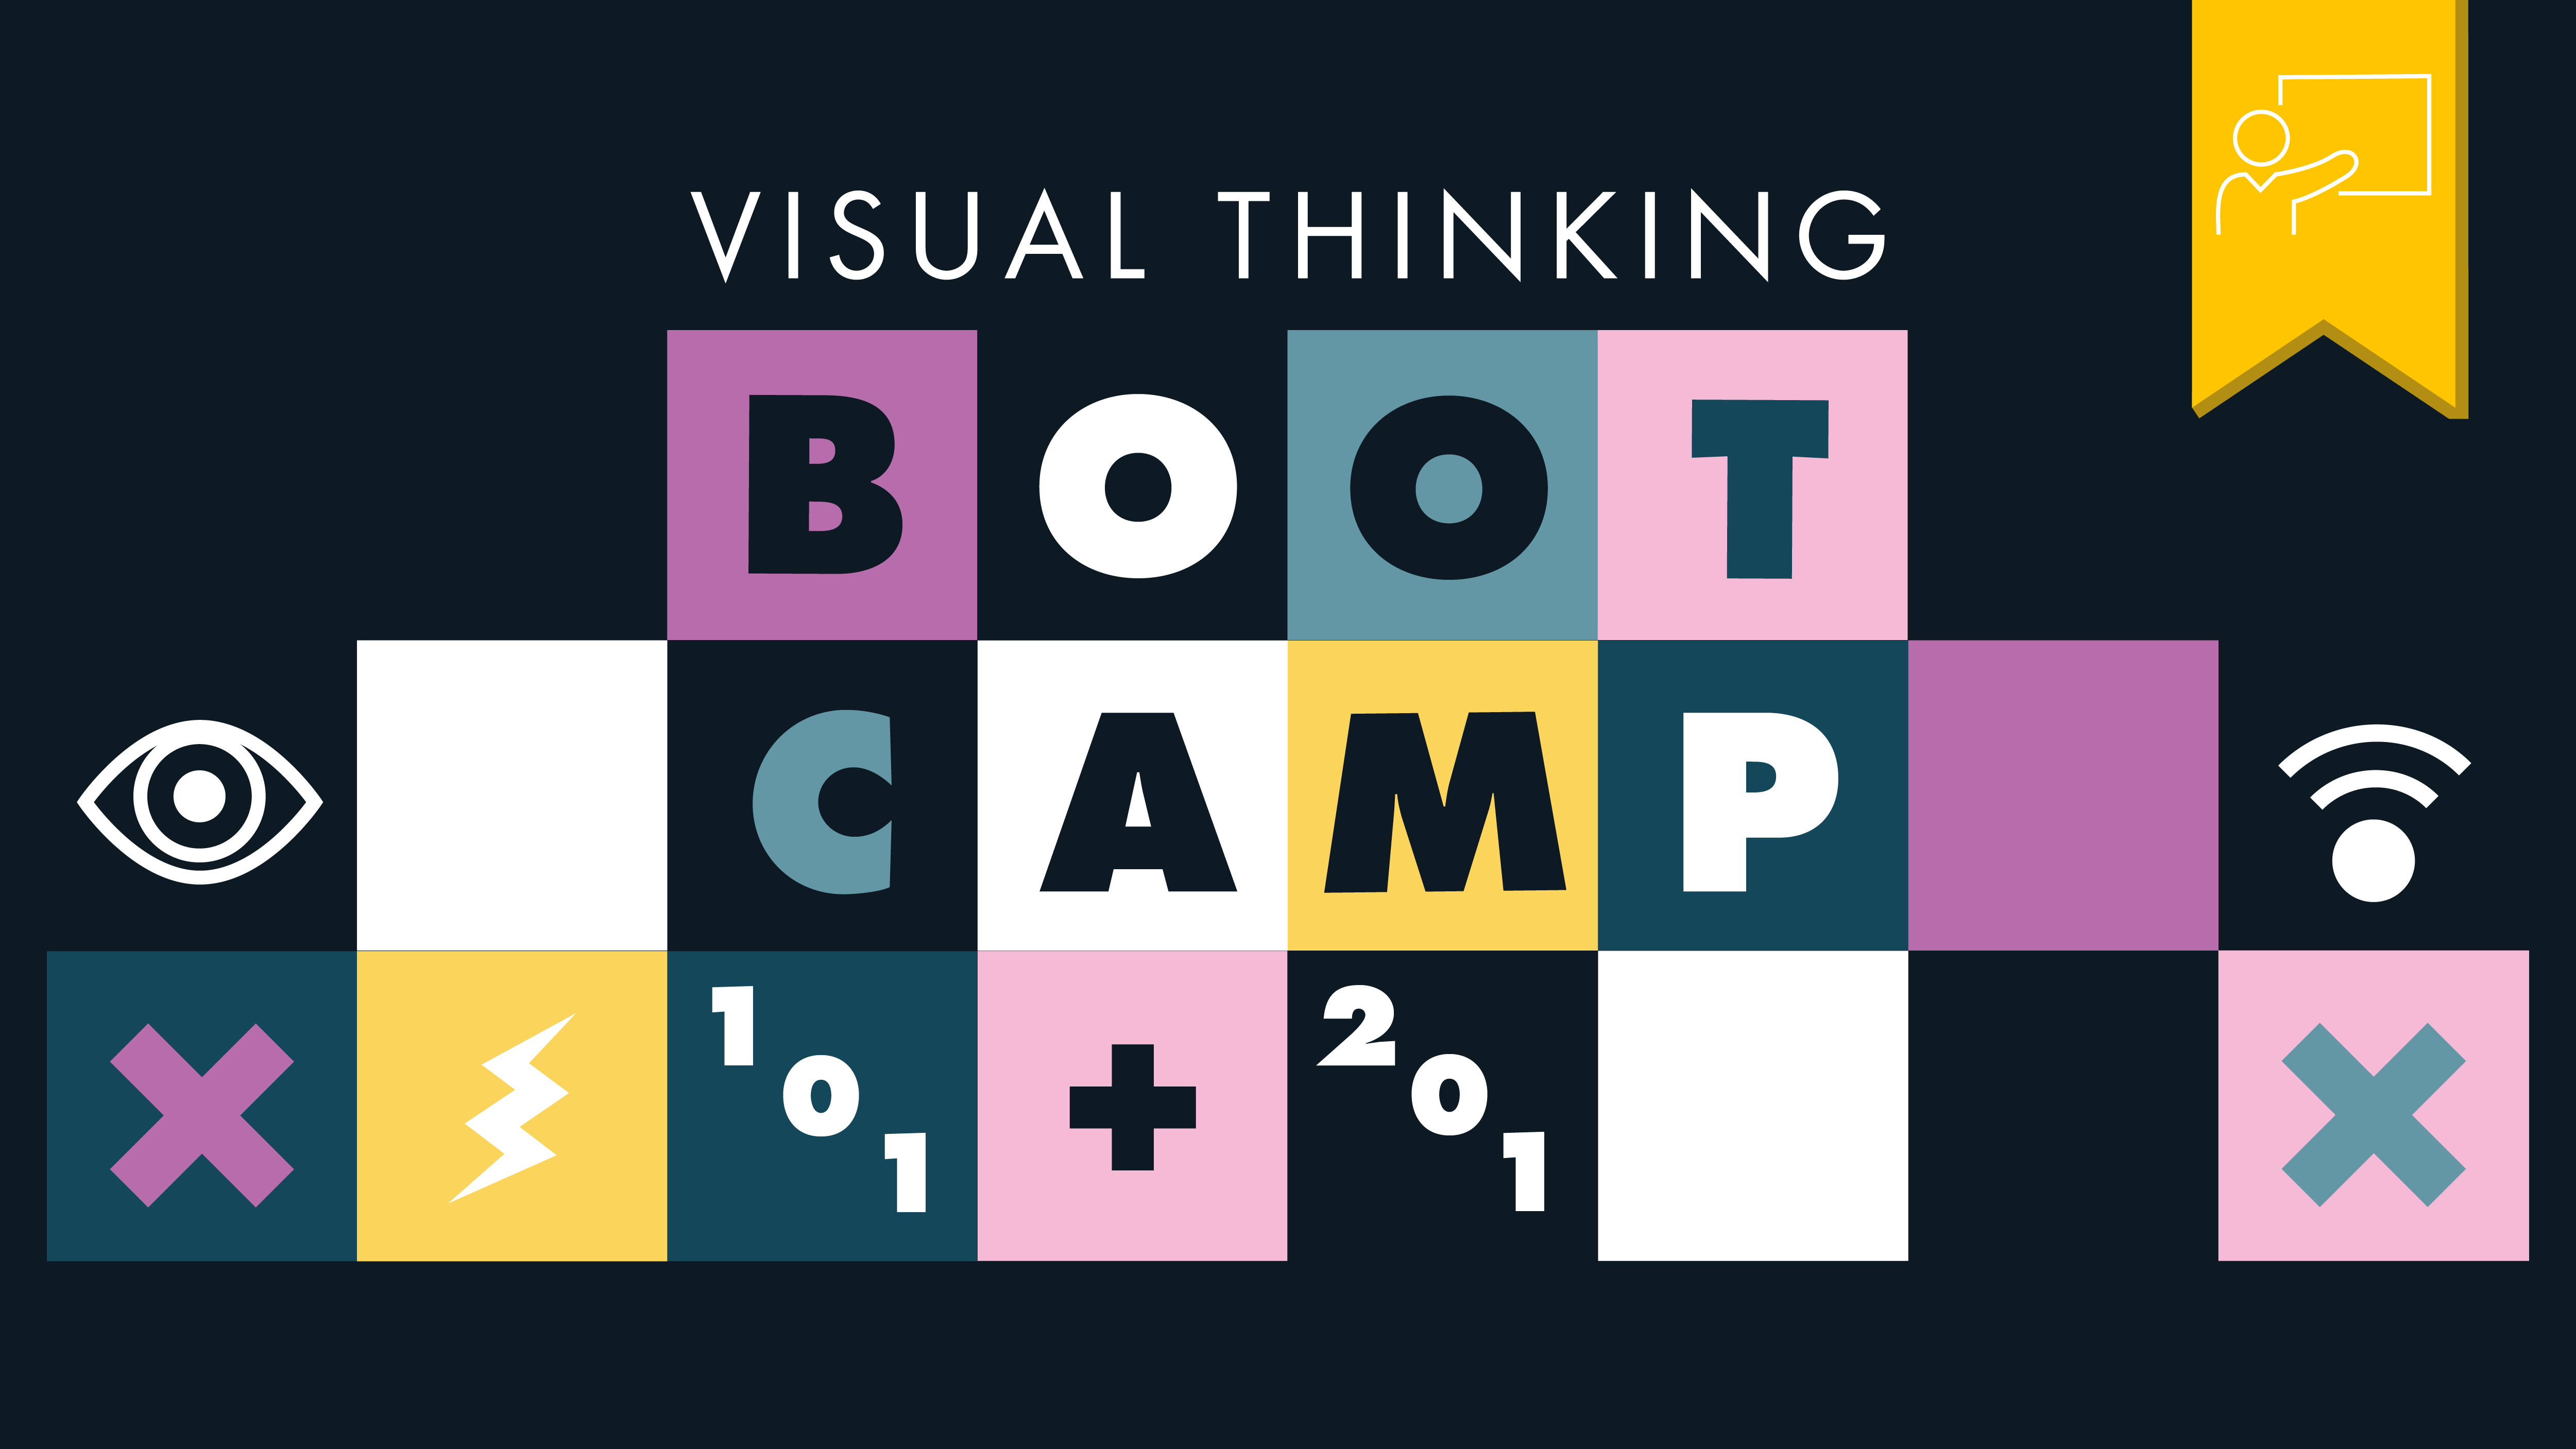 Header image with boxes and other visual thinking elements, text says visual thinking bootcamp 101 + 201. A yellow tag with an icon of a person presenting denotes that this was a workshop.